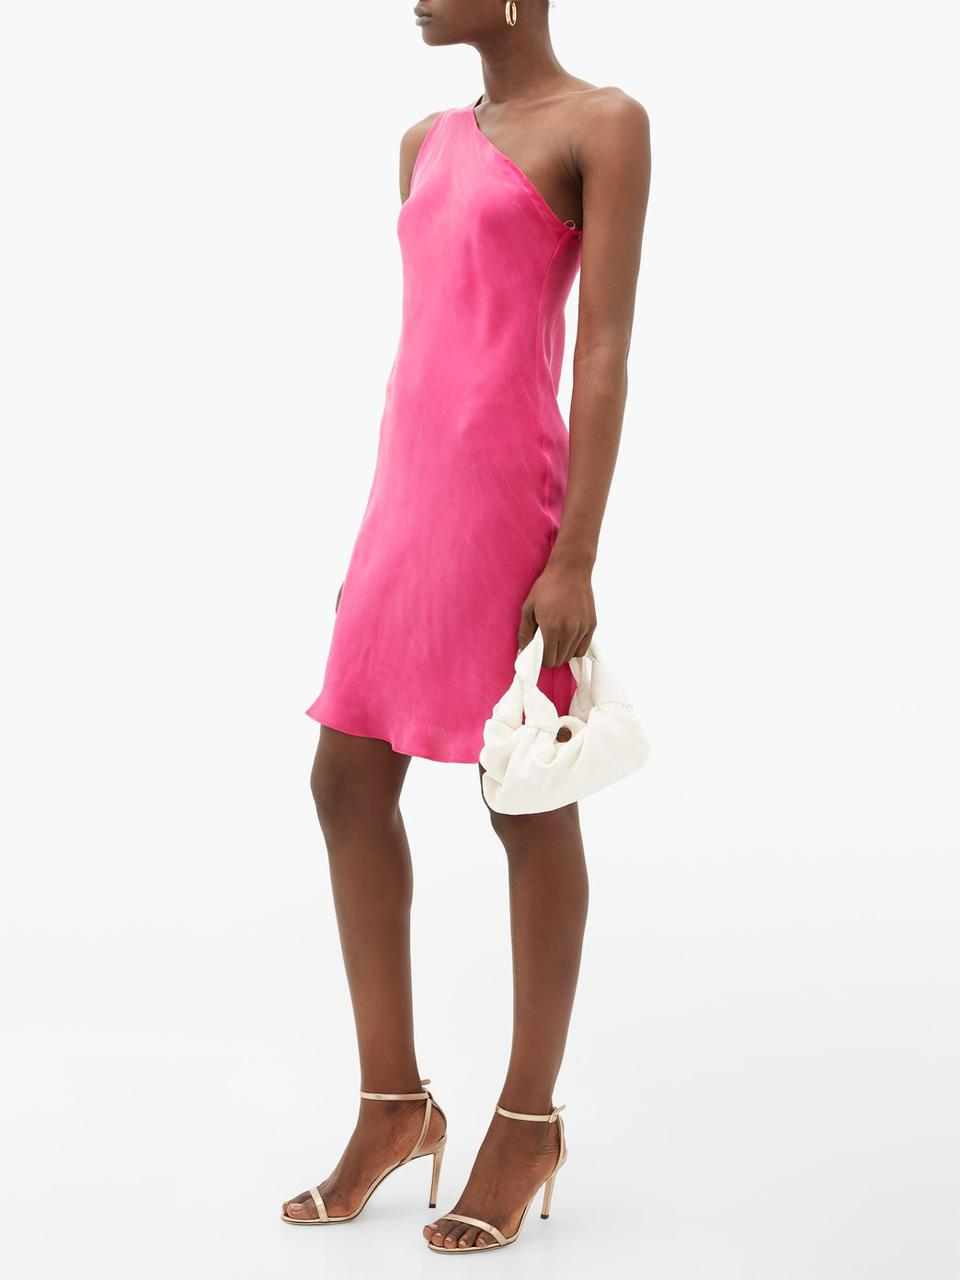 The One Shoulder Dress by Worme